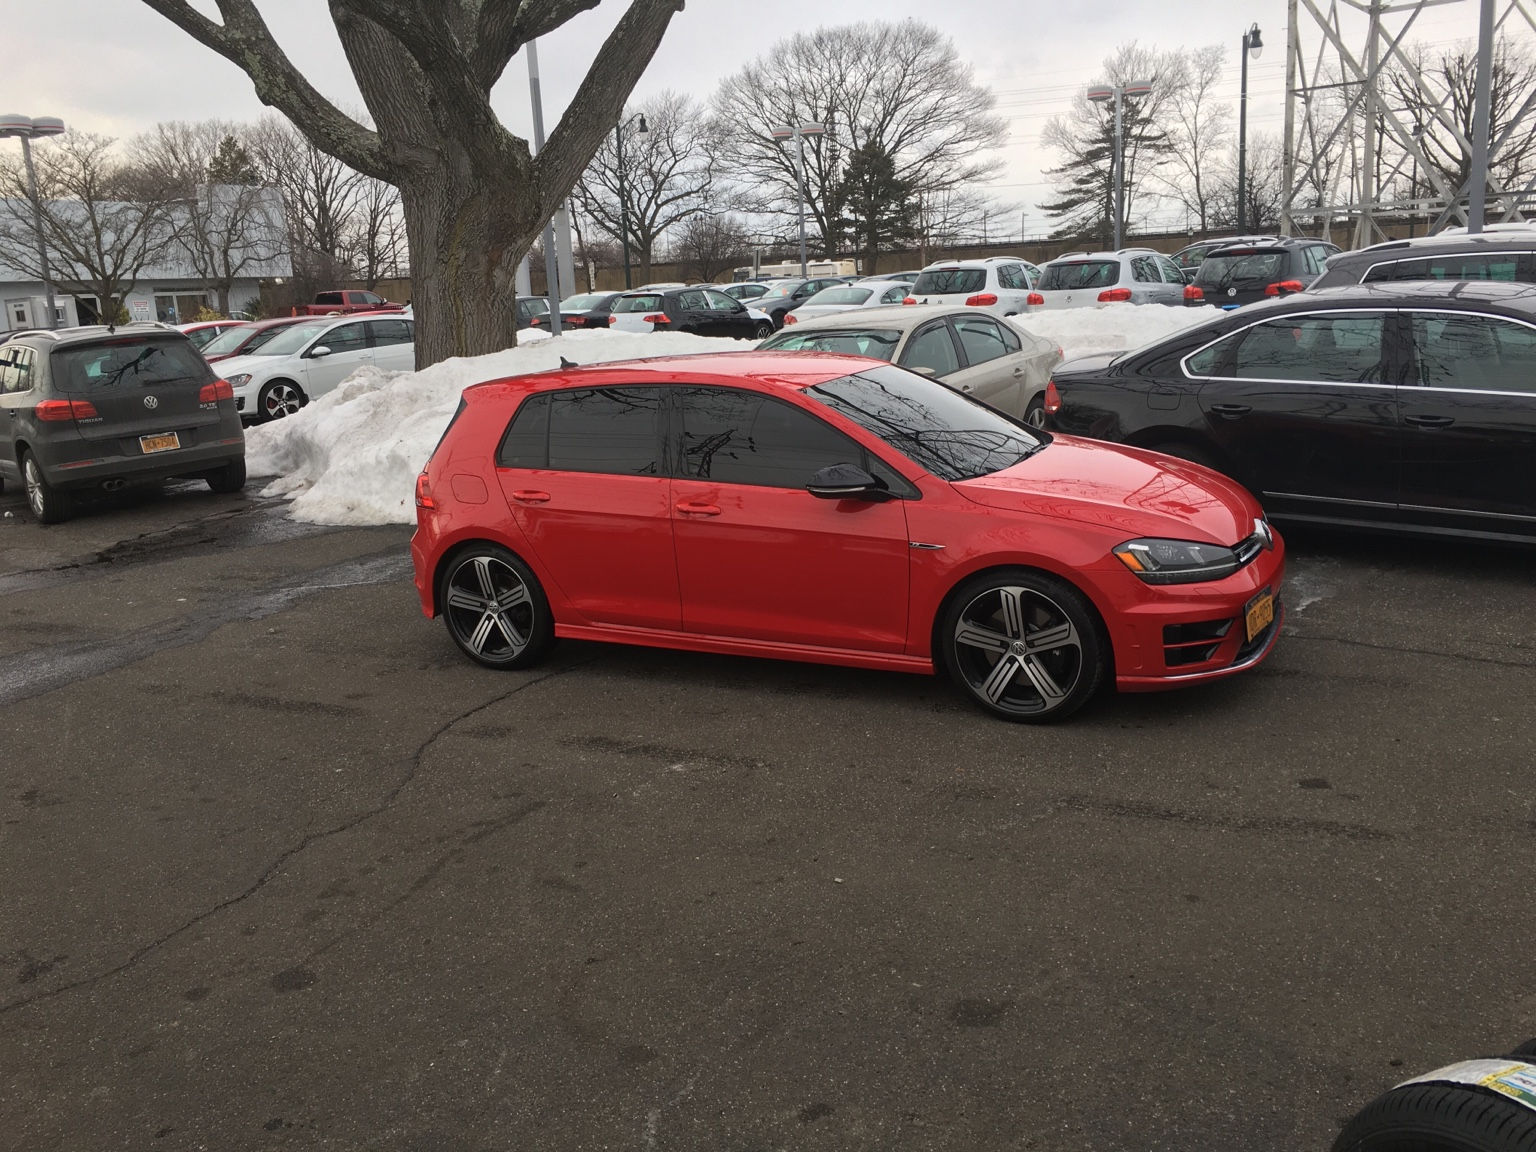 Tint percentage golfmk7 vw gti mkvii forum vw golf r for 18 percent window tint